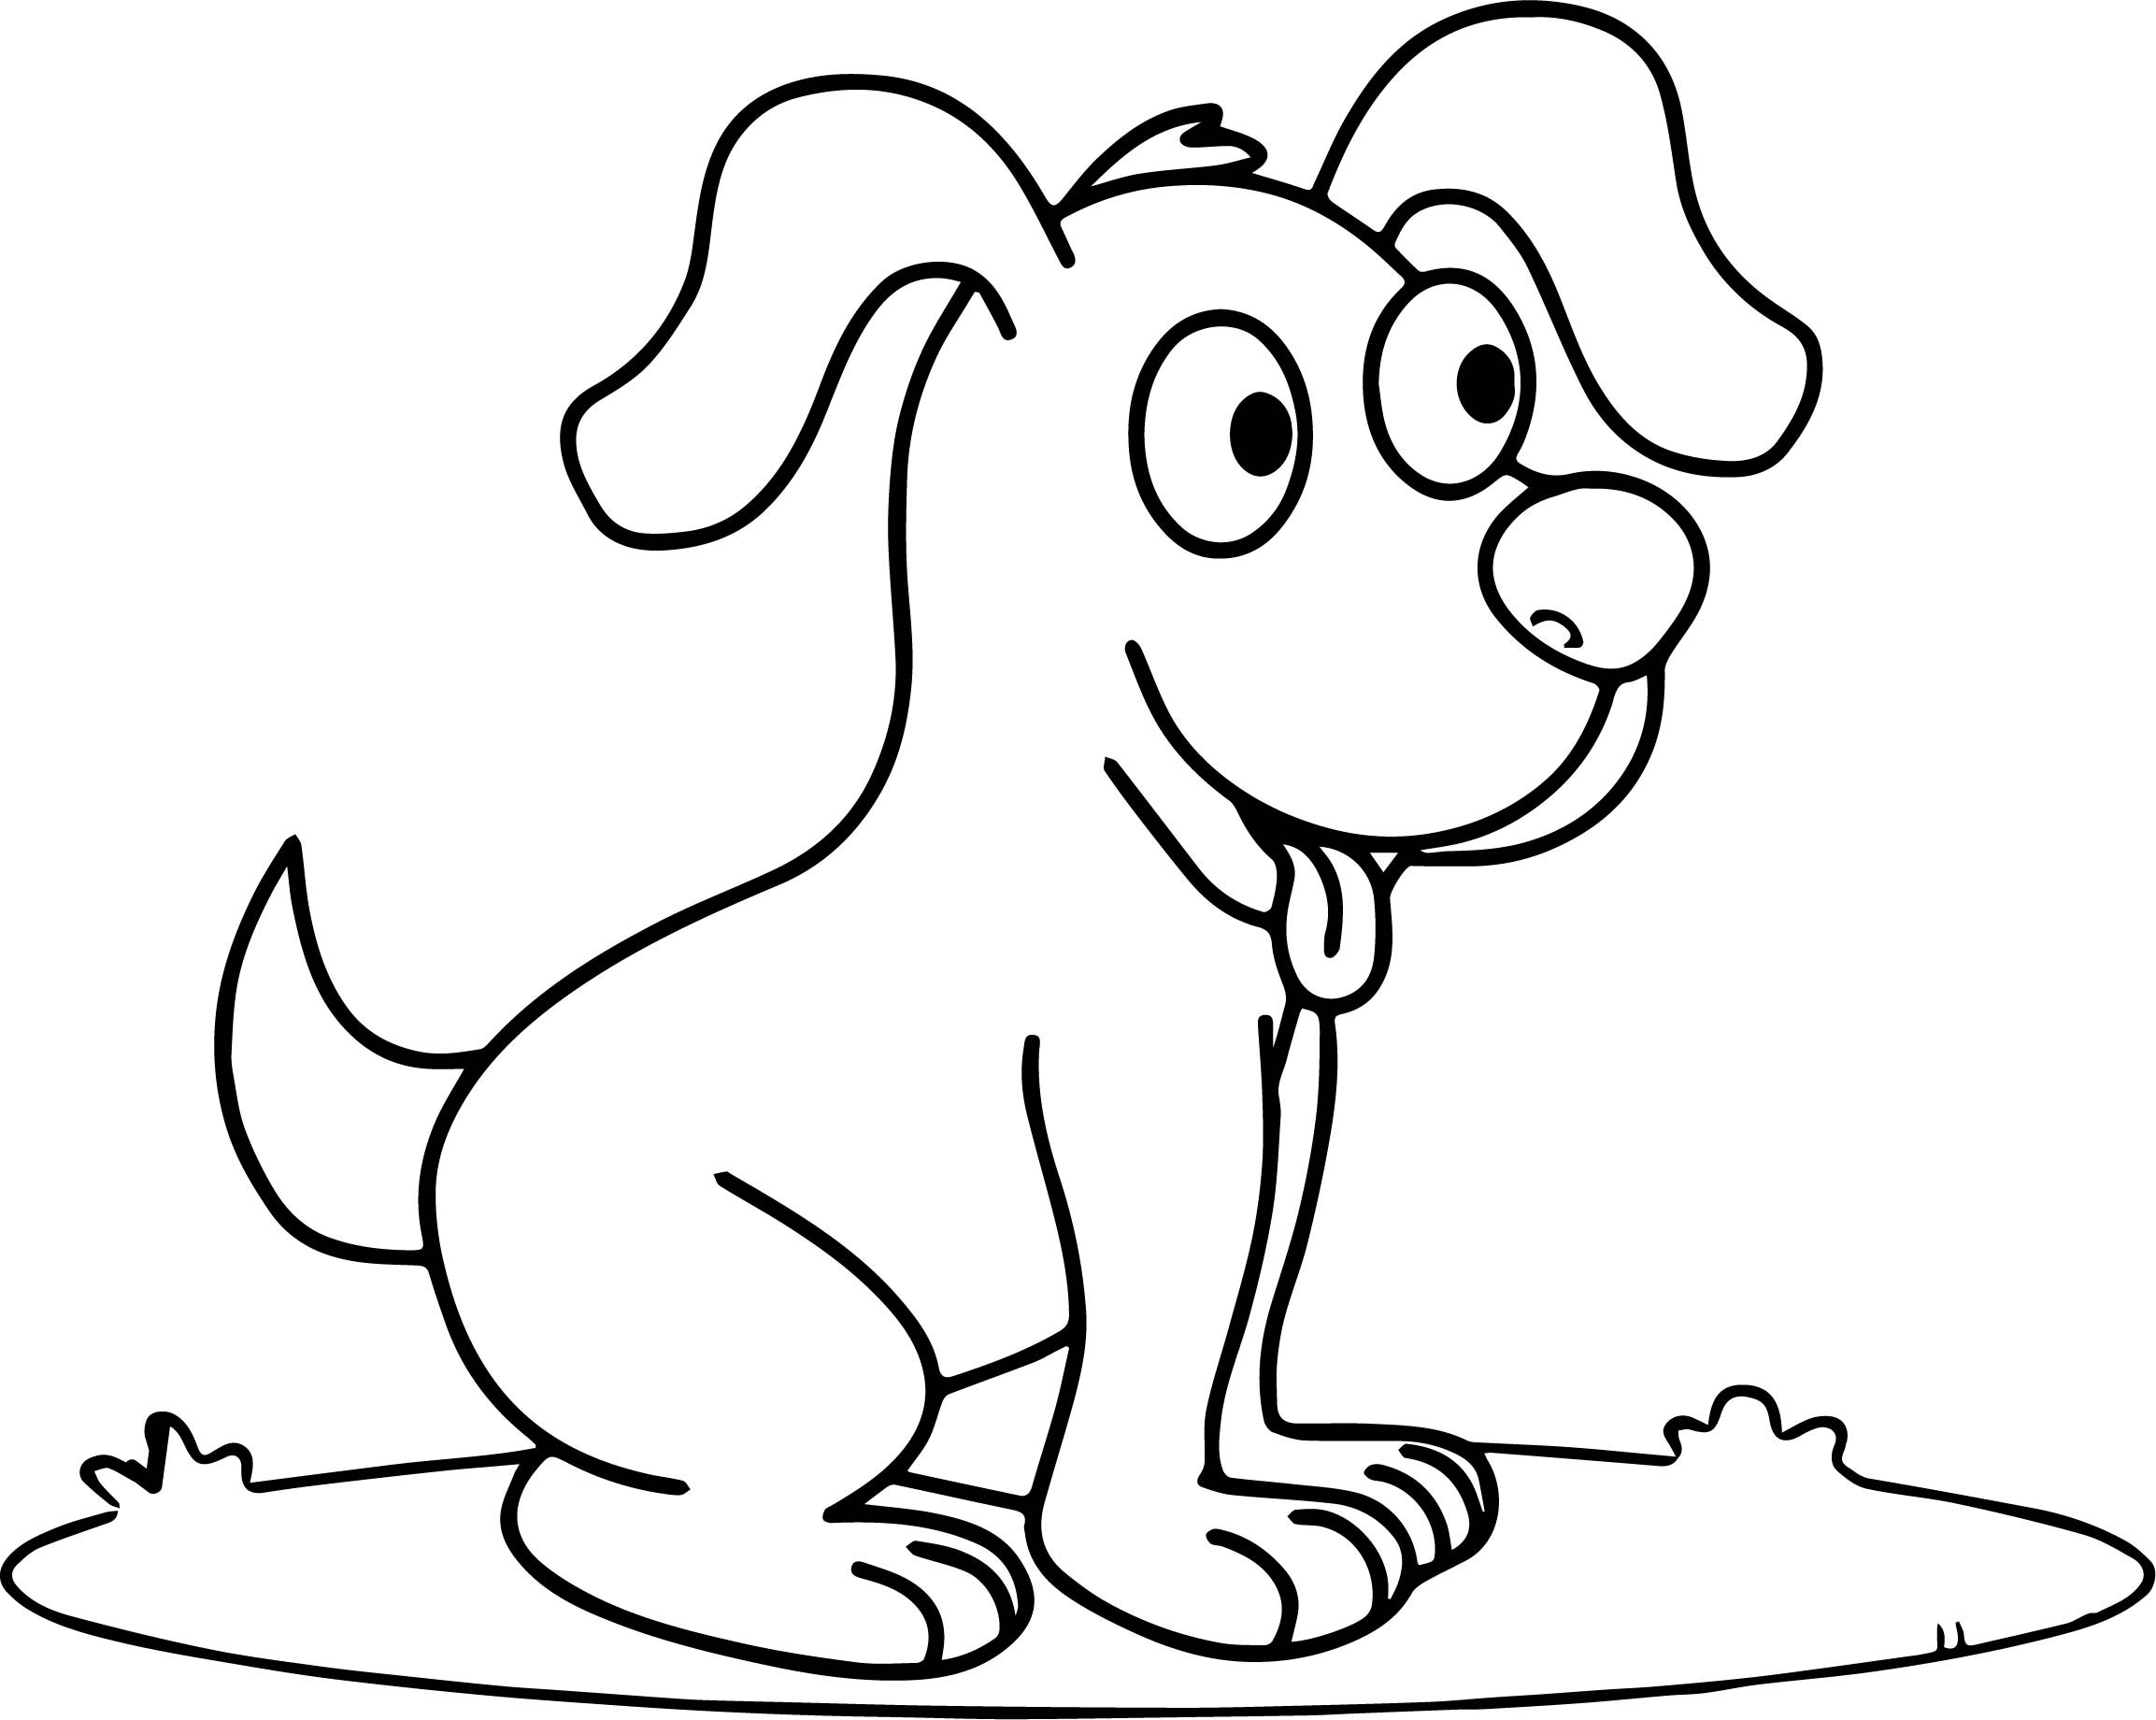 dog coloring in newfoundland dog coloring page at getcoloringscom free coloring dog in